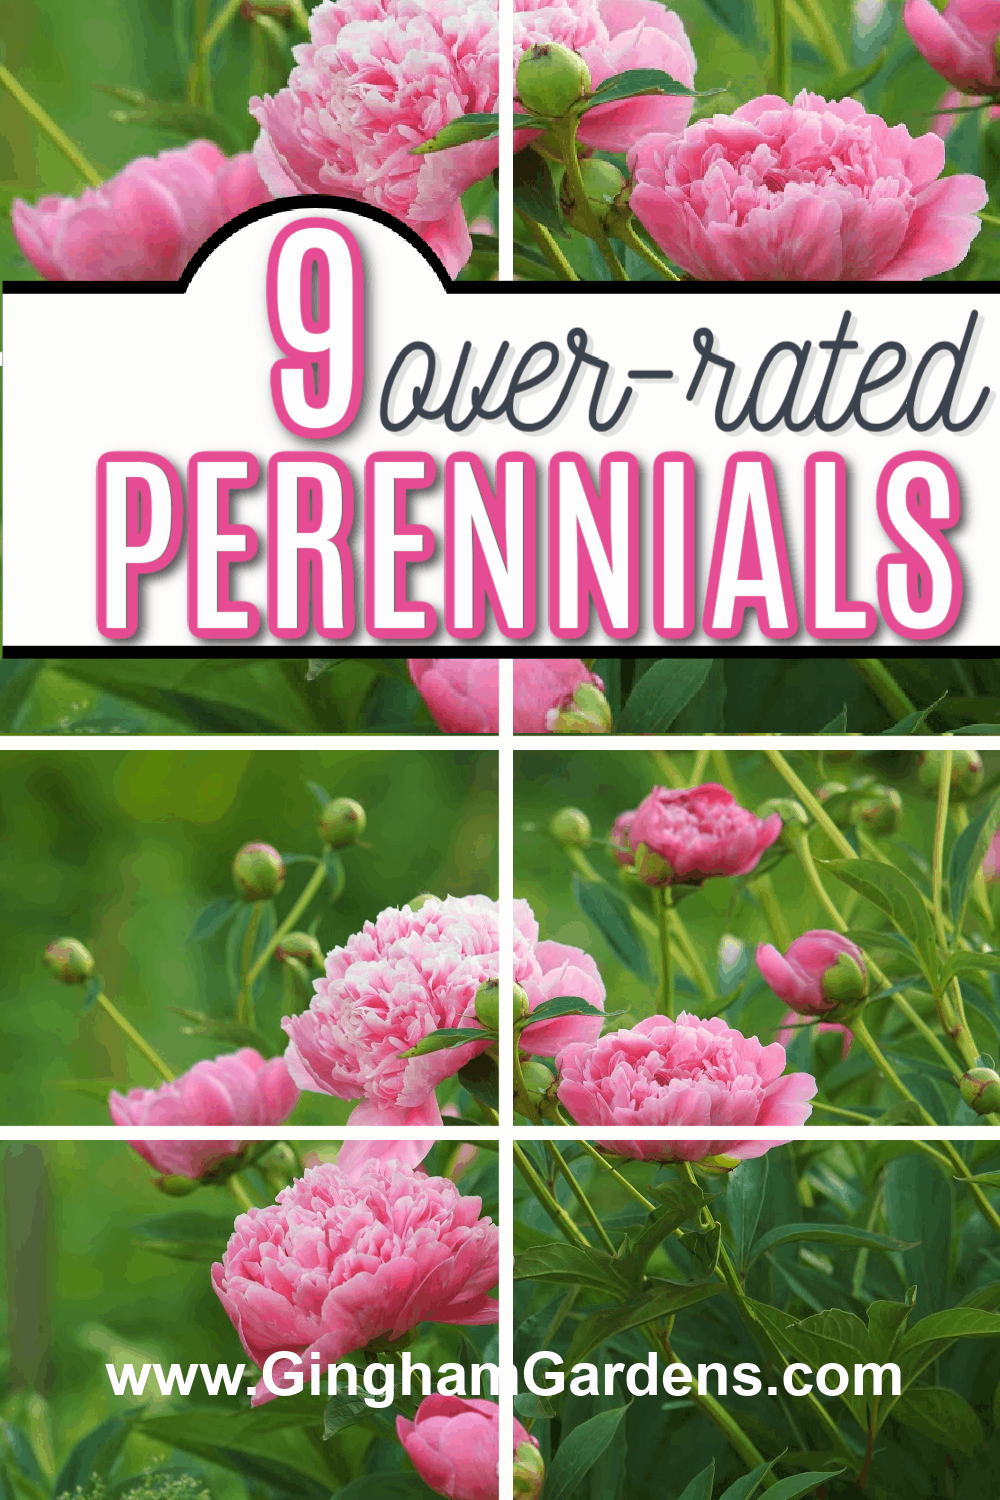 Images of Peony Flowers with text overlay 9 over-rated Perennials